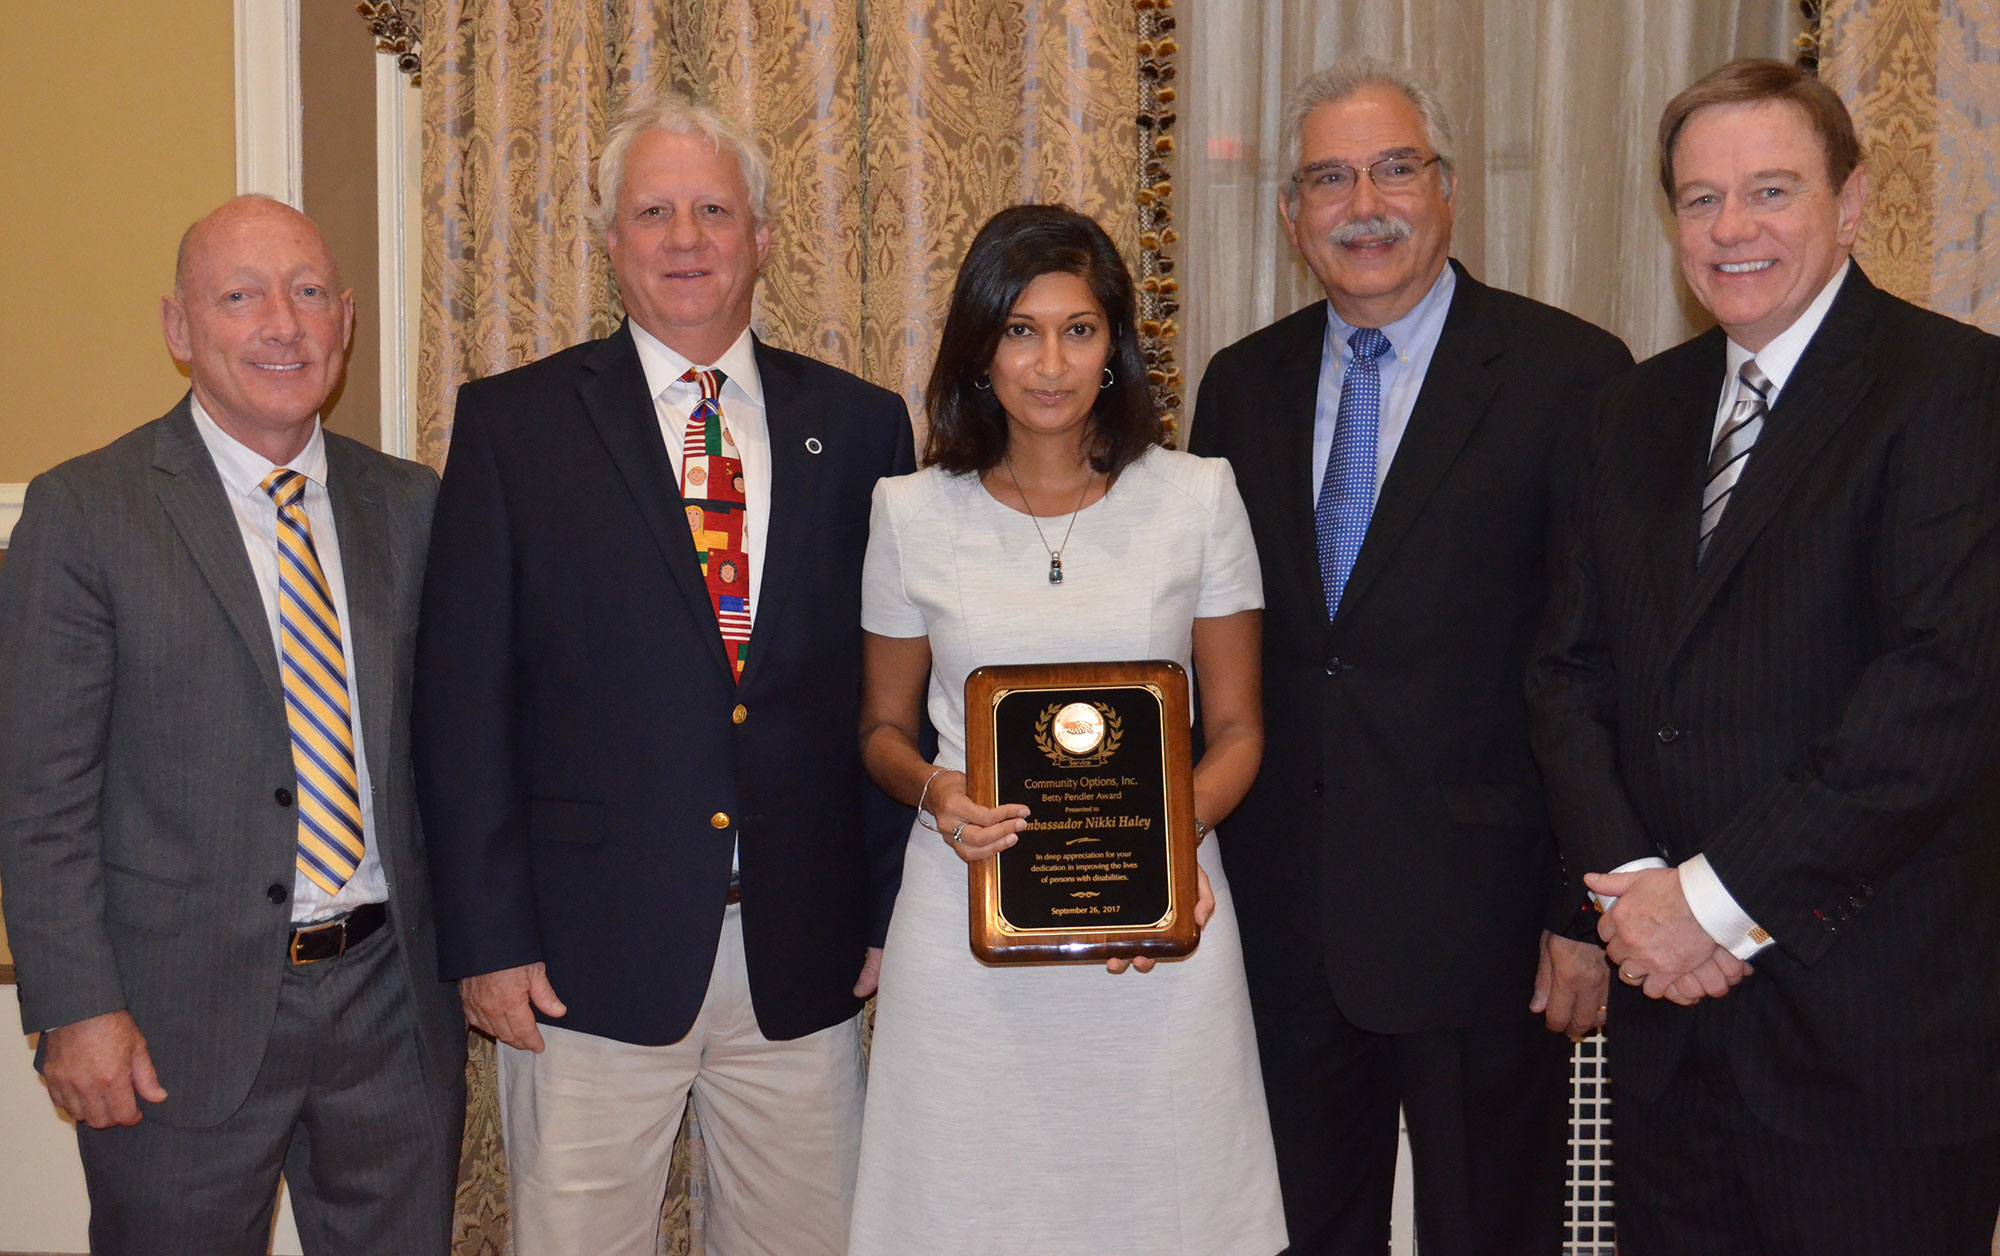 From L to R: James Spano, Trustee, Community Options Enterprises; Peter Dulligan, Trustee, Community Options, Inc.; Swati Patel, then-governor Nikki Haley's chief of staff; Robert Stack, President & CEO, Community Options, Inc.; Philip Lian, Trustee, Community Options Enterprises, Inc.